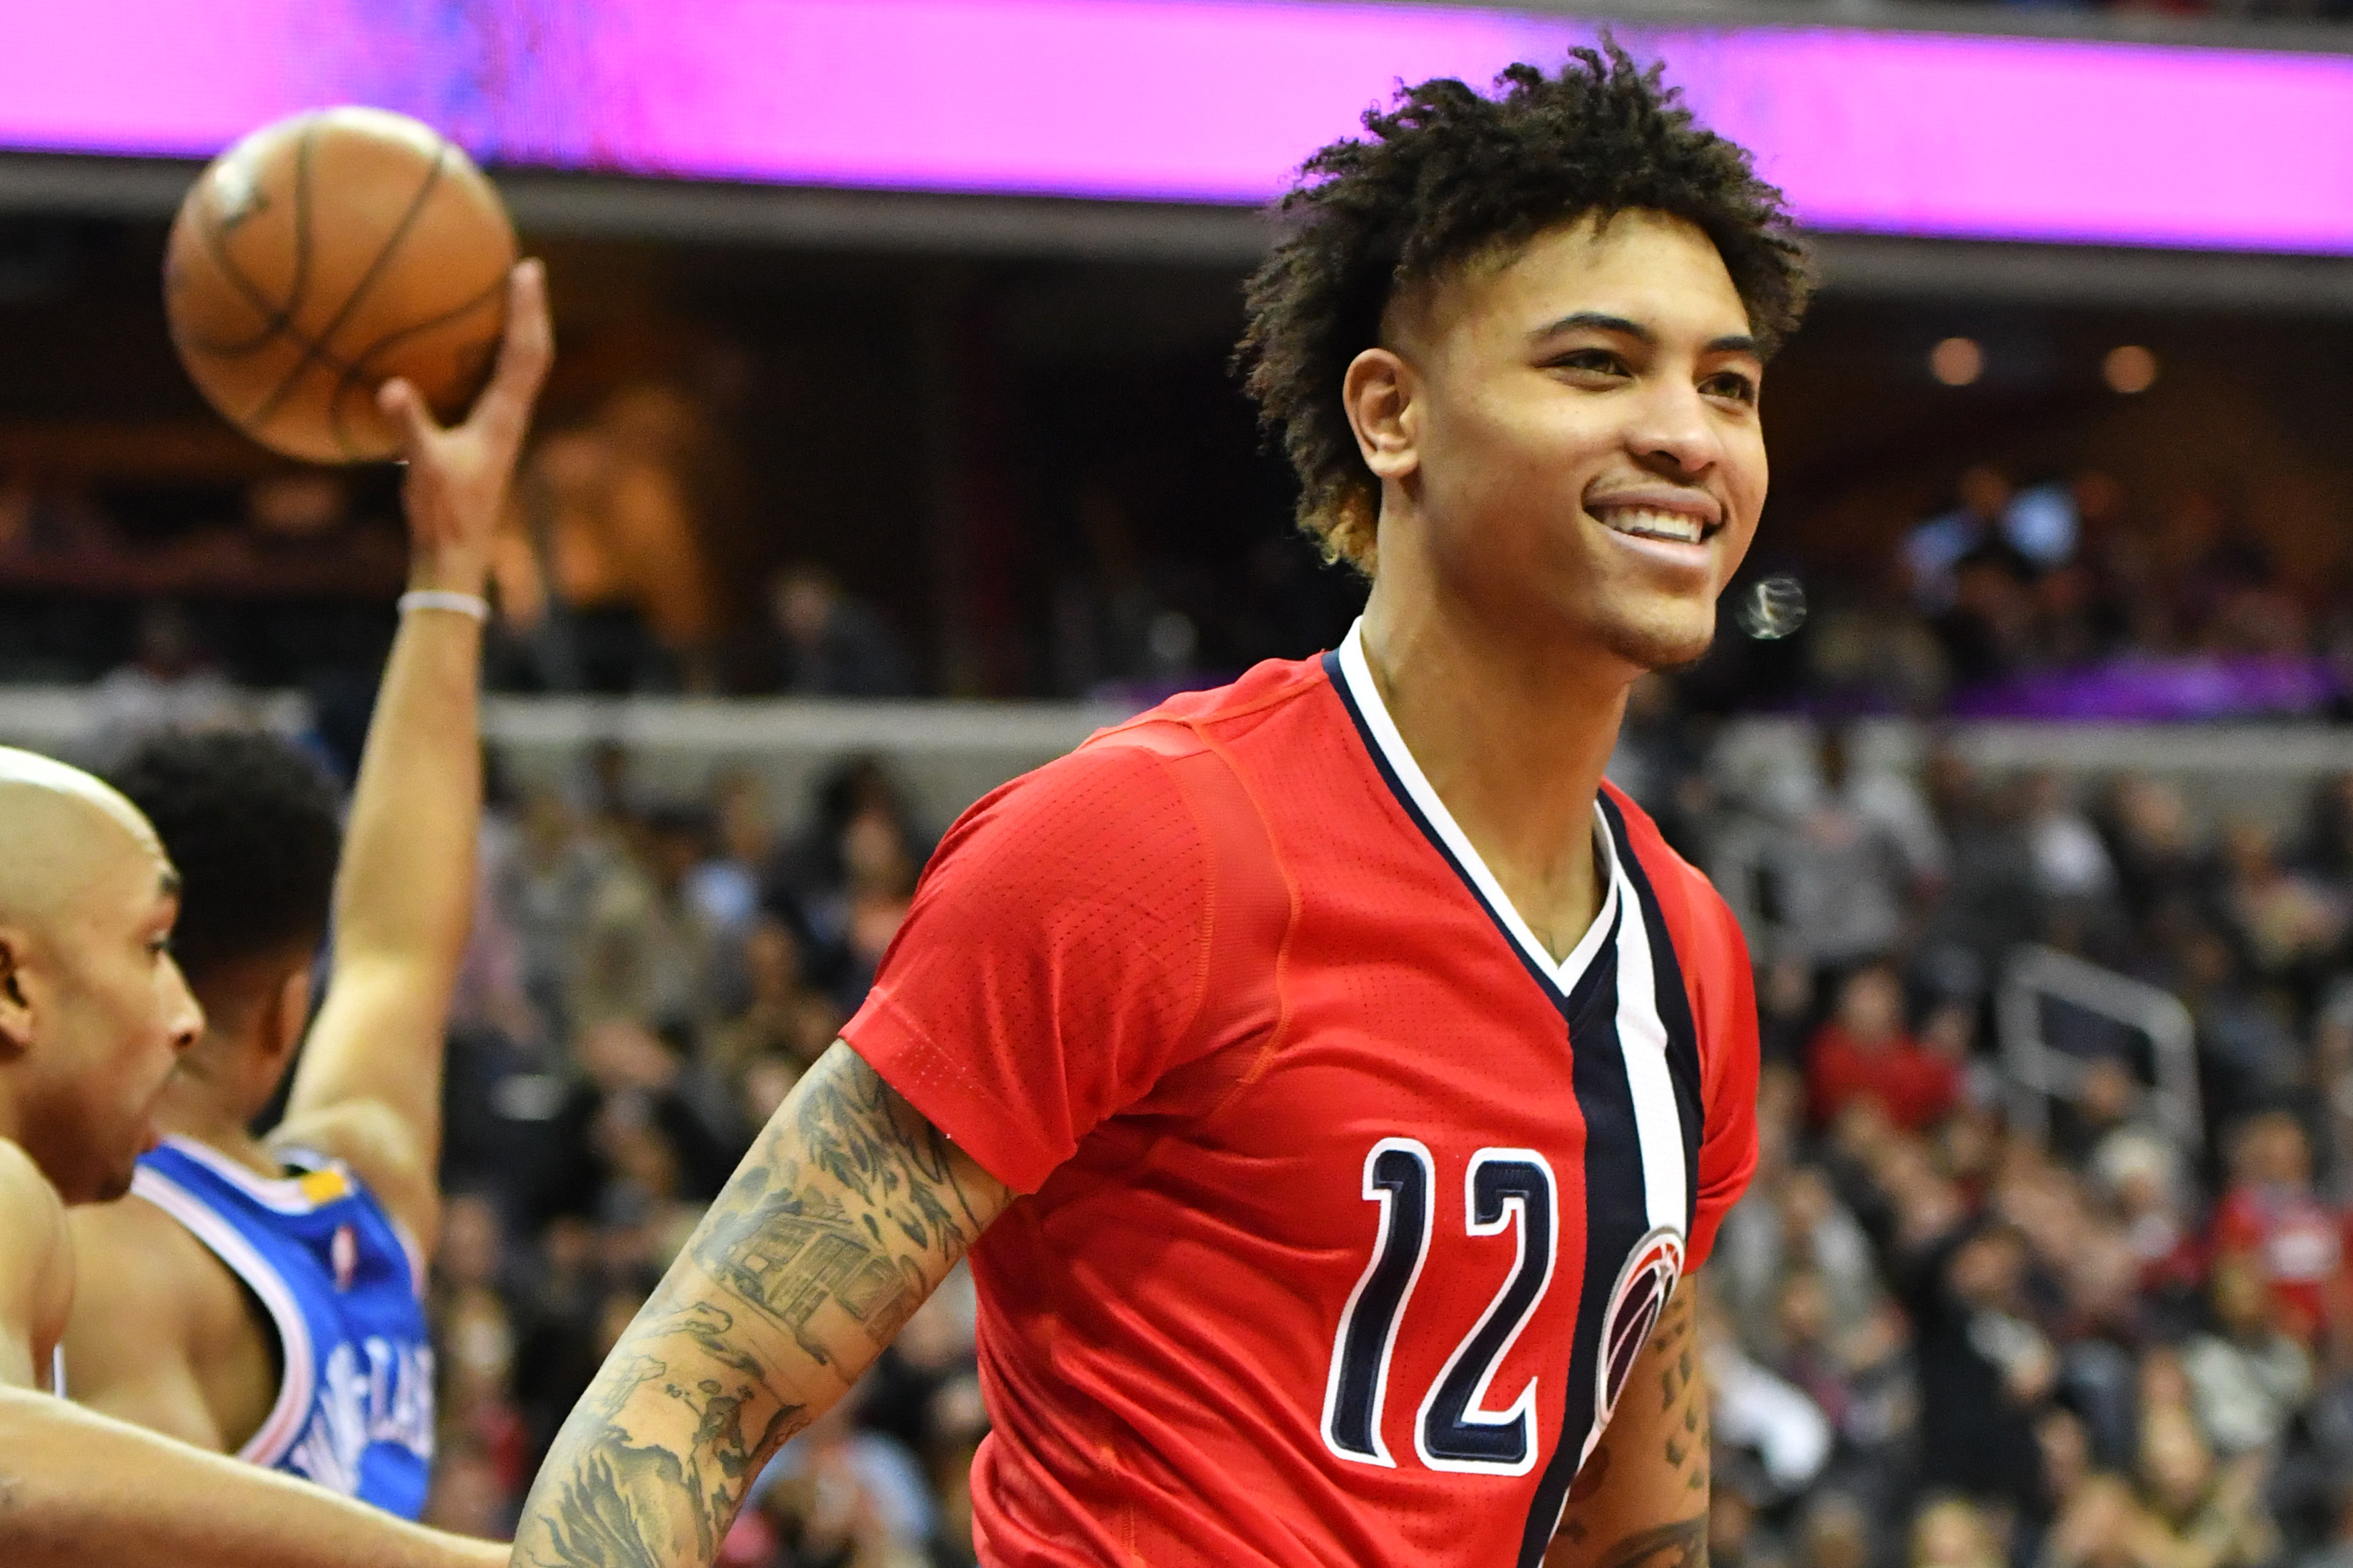 Kansas Basketball: Rivalry memories from Kelly Oubre